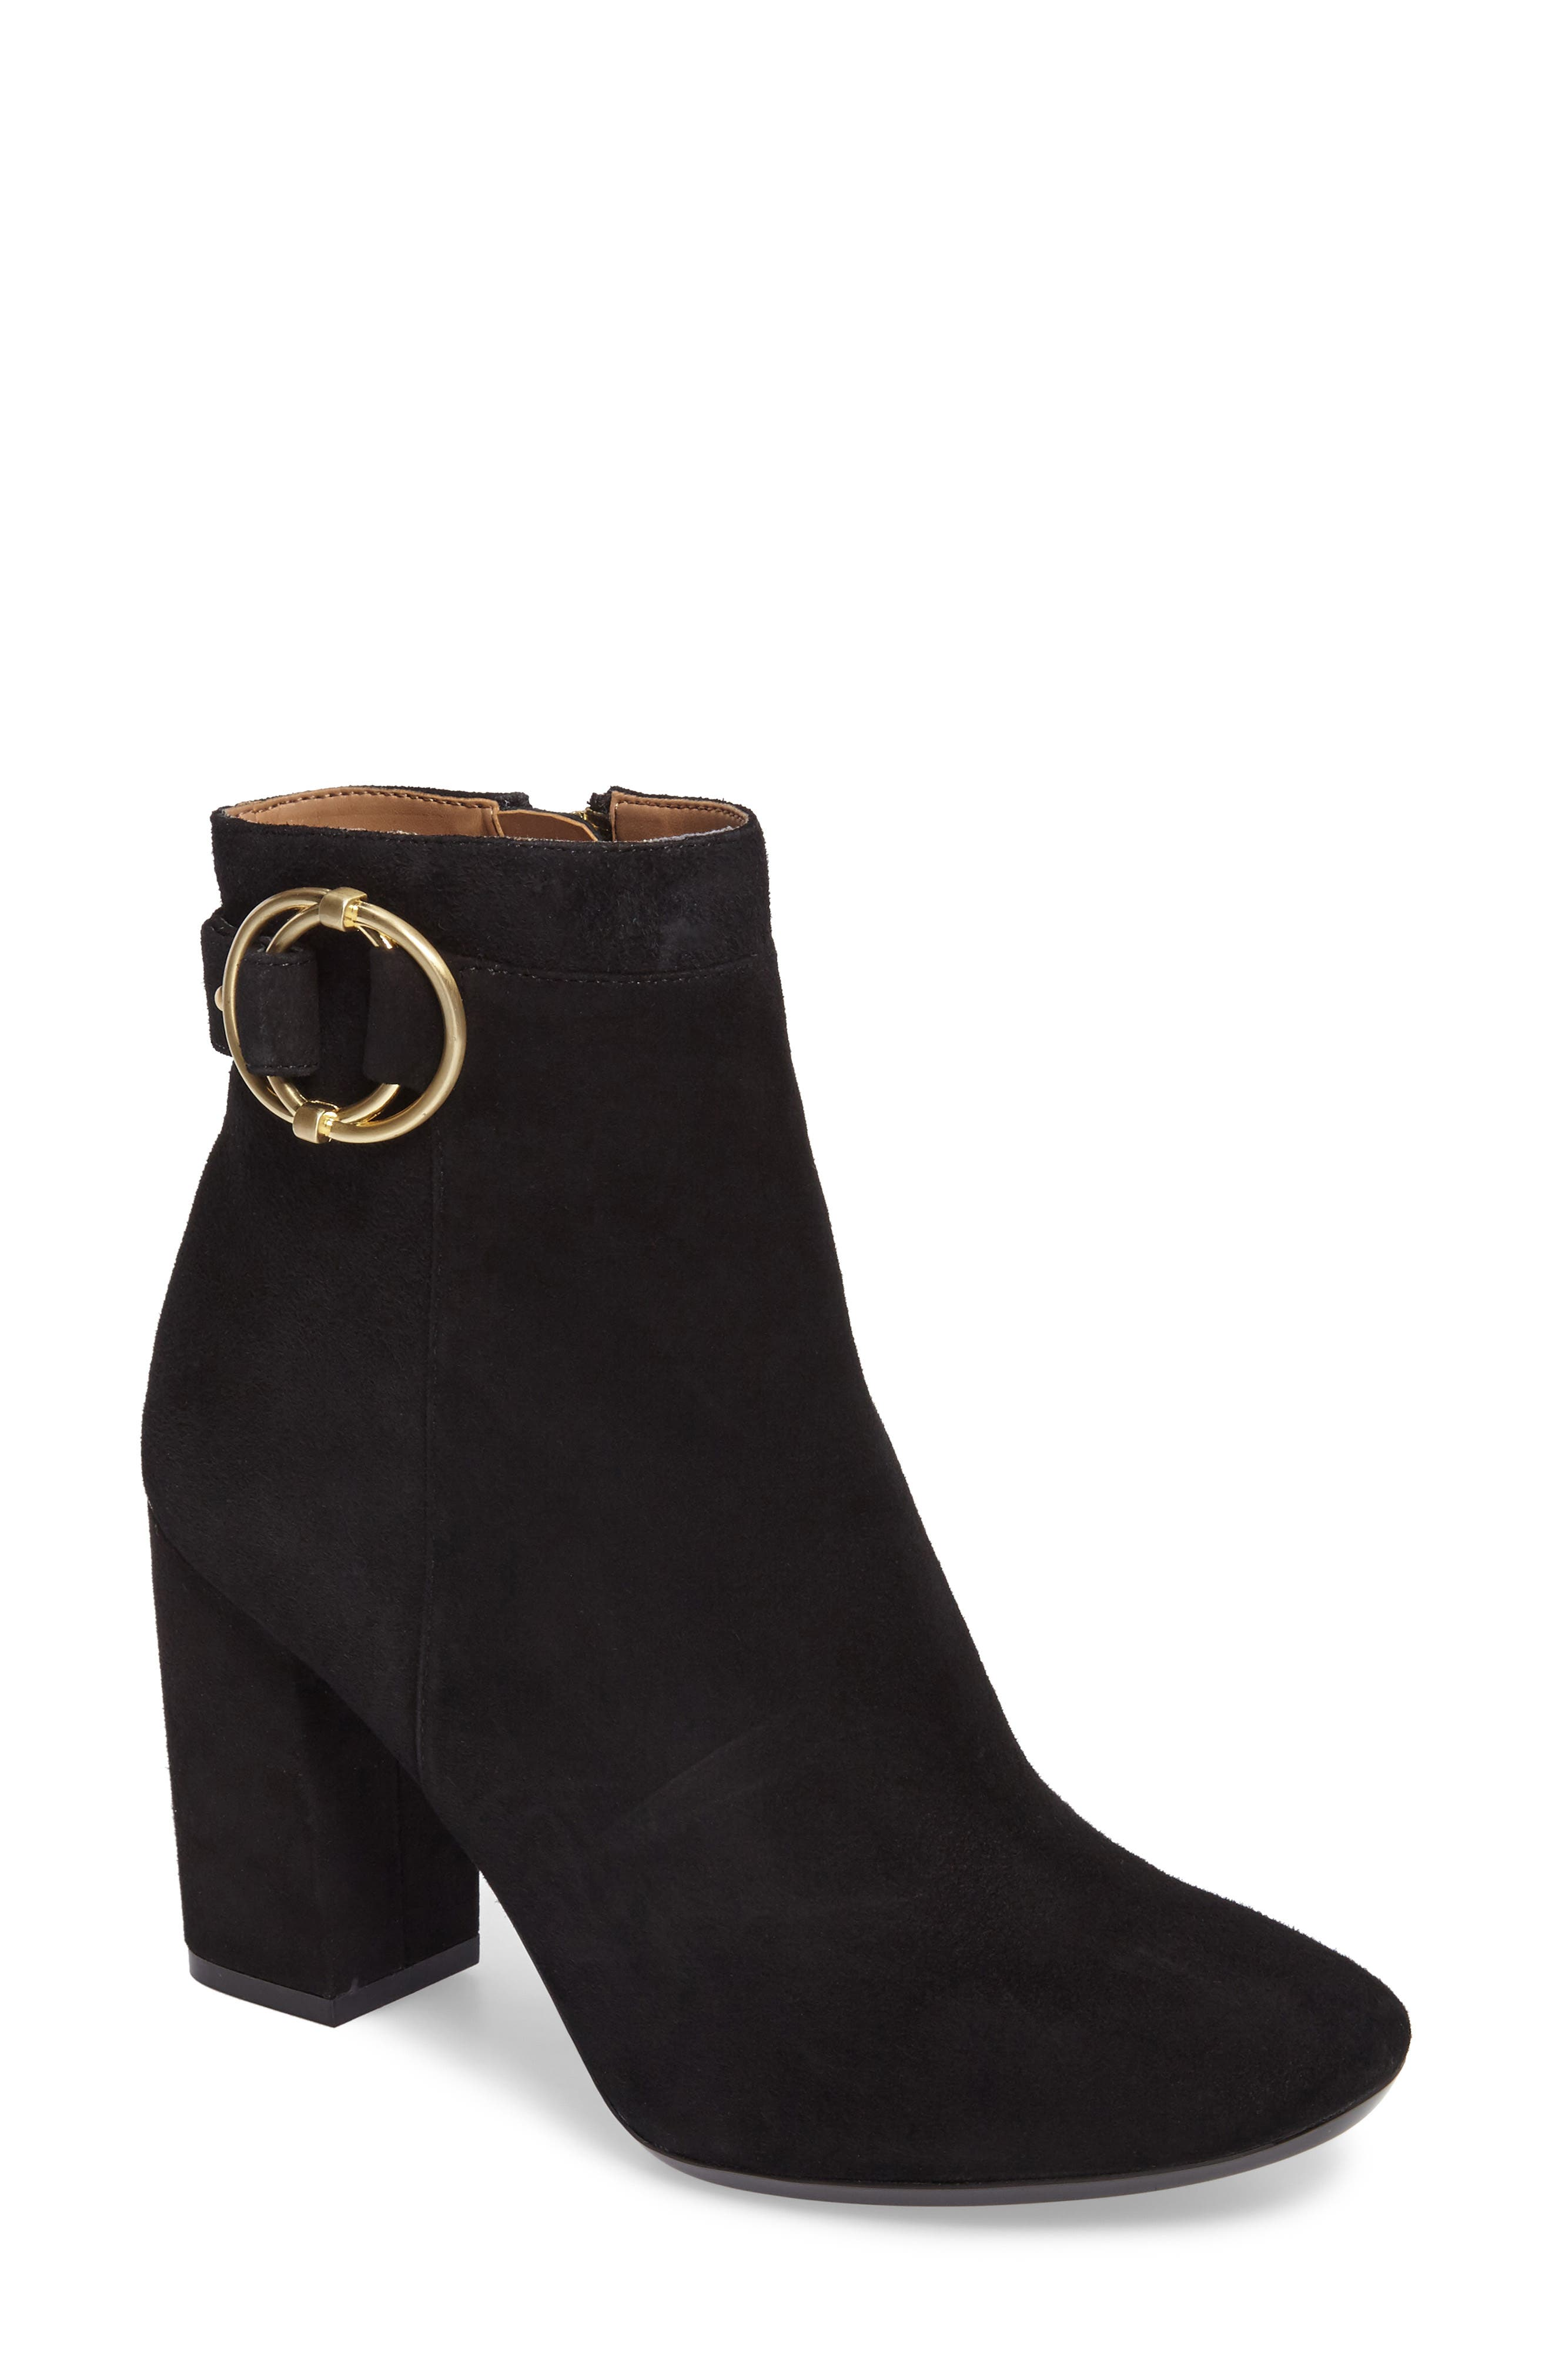 Cedrica Bootie,                         Main,                         color, 001